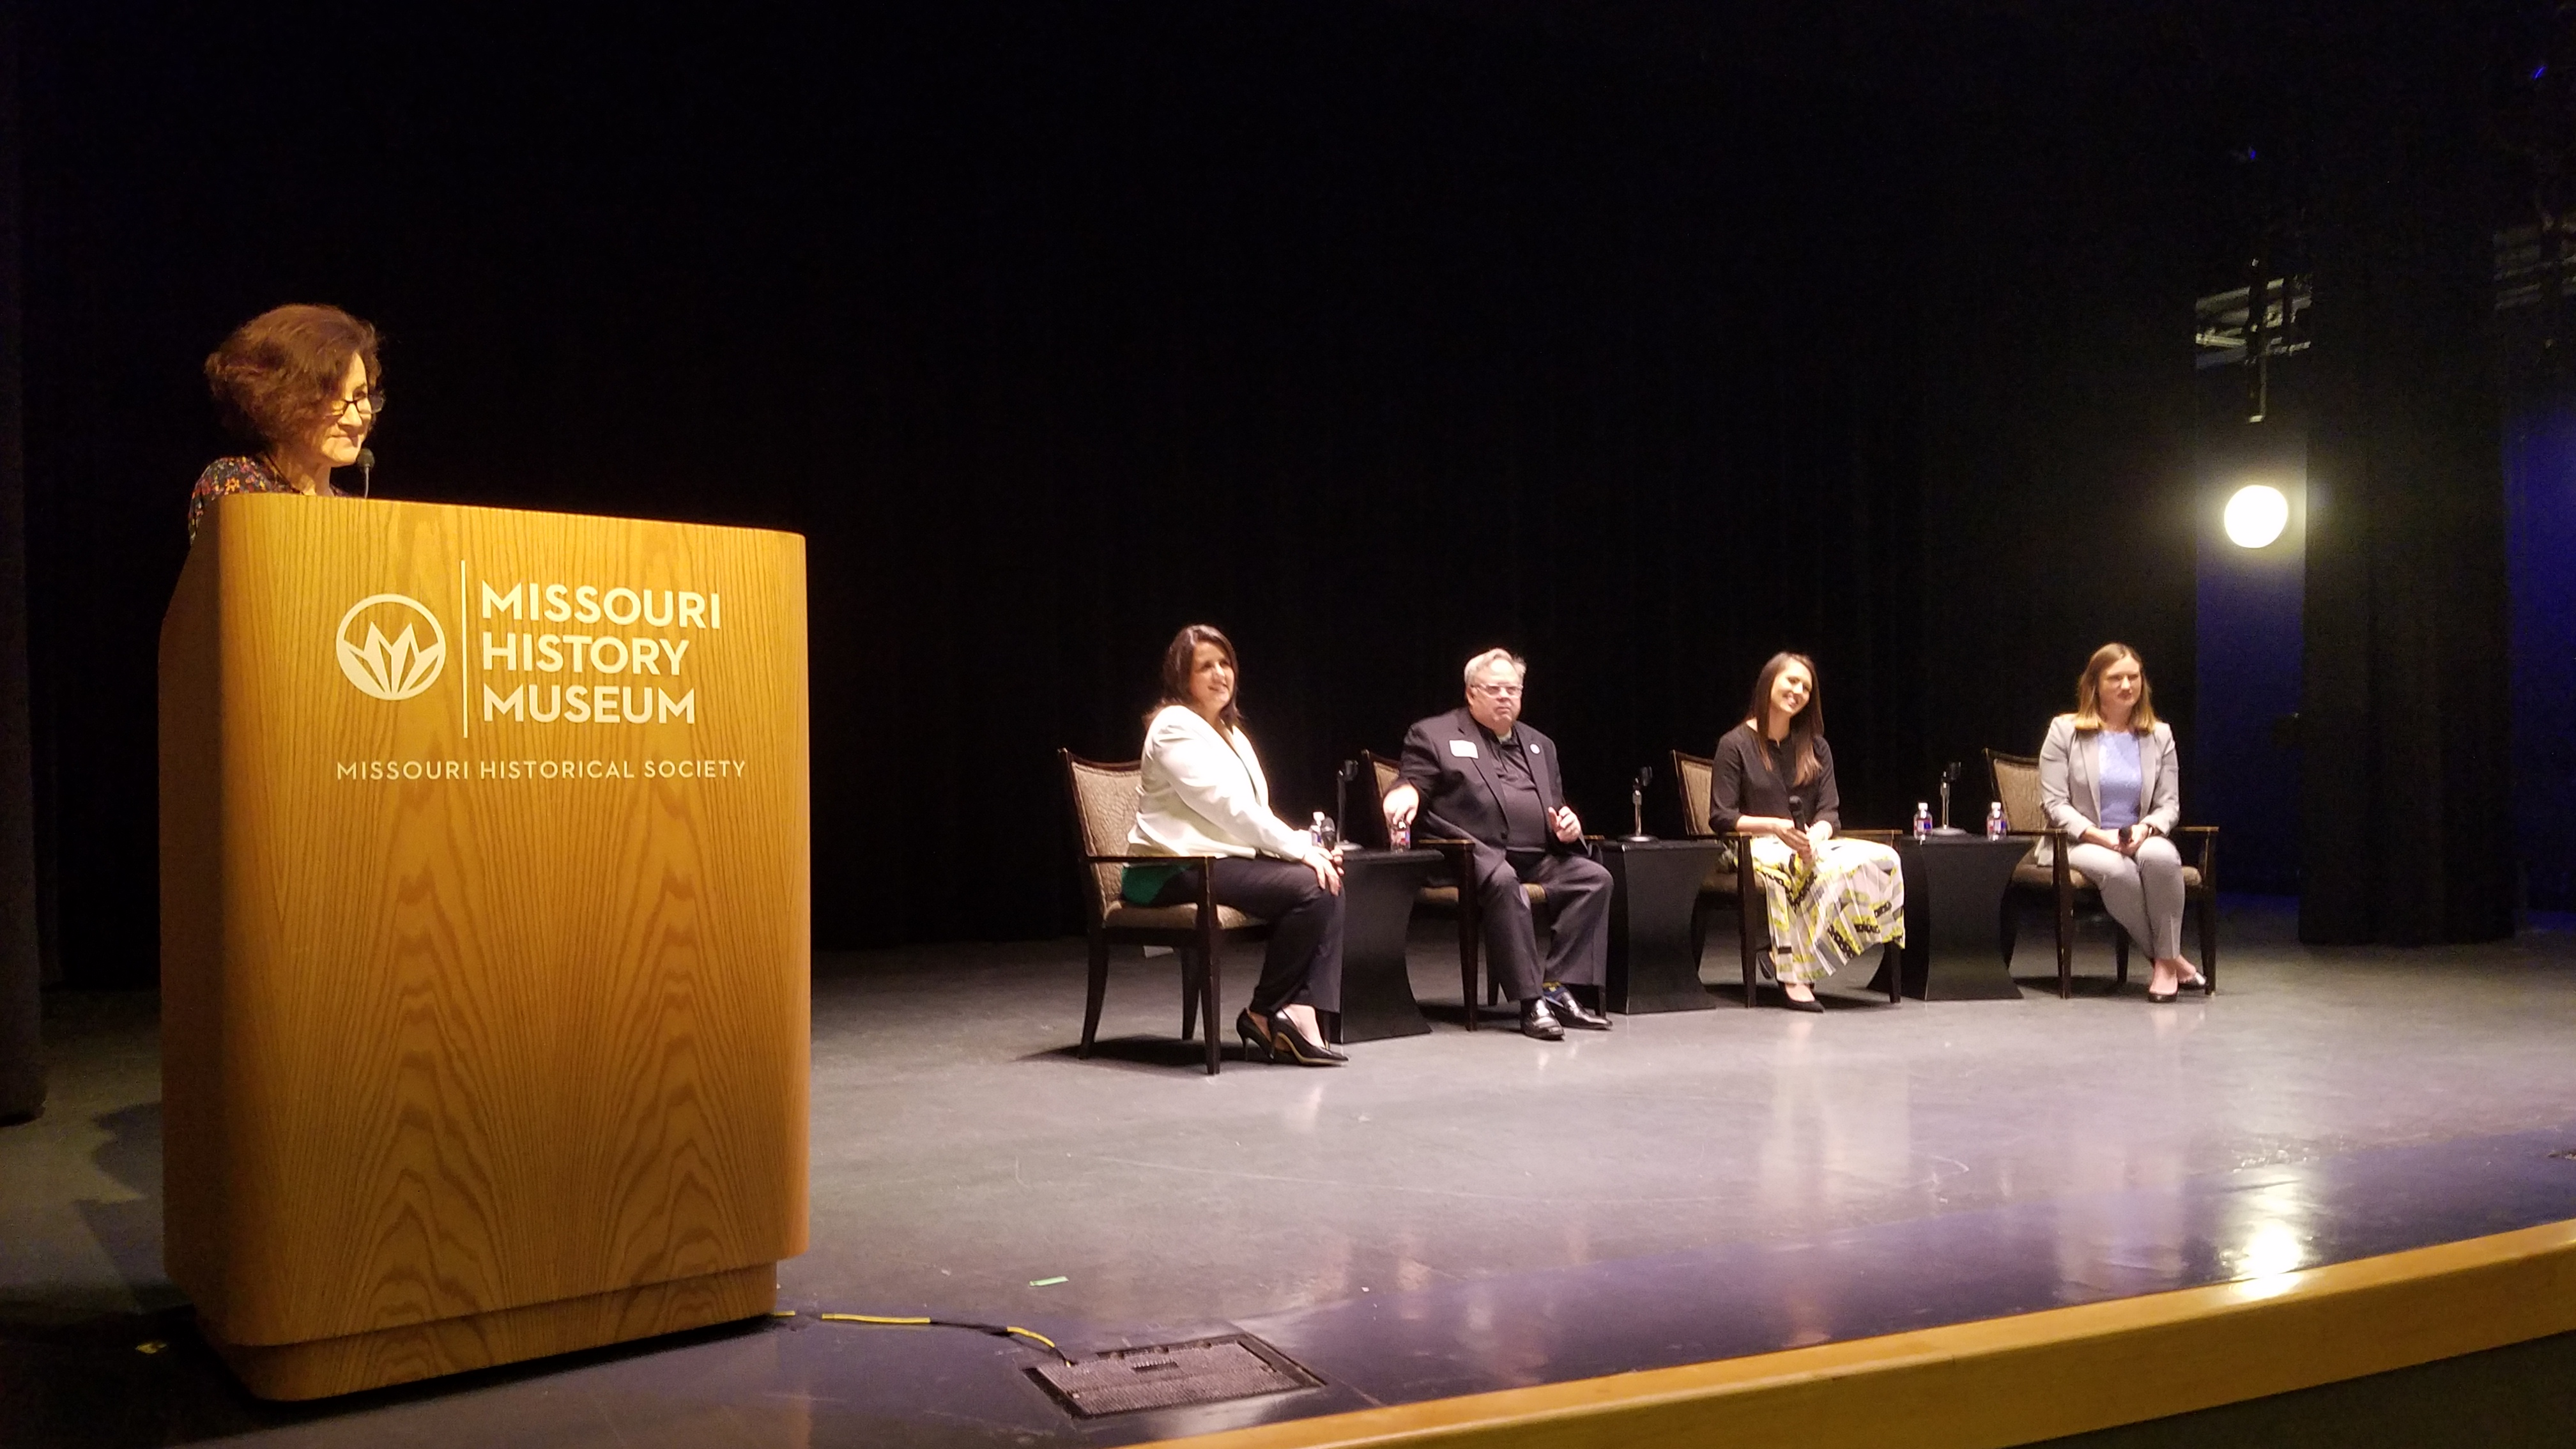 Four people sitting on a stage and one person standing at podium